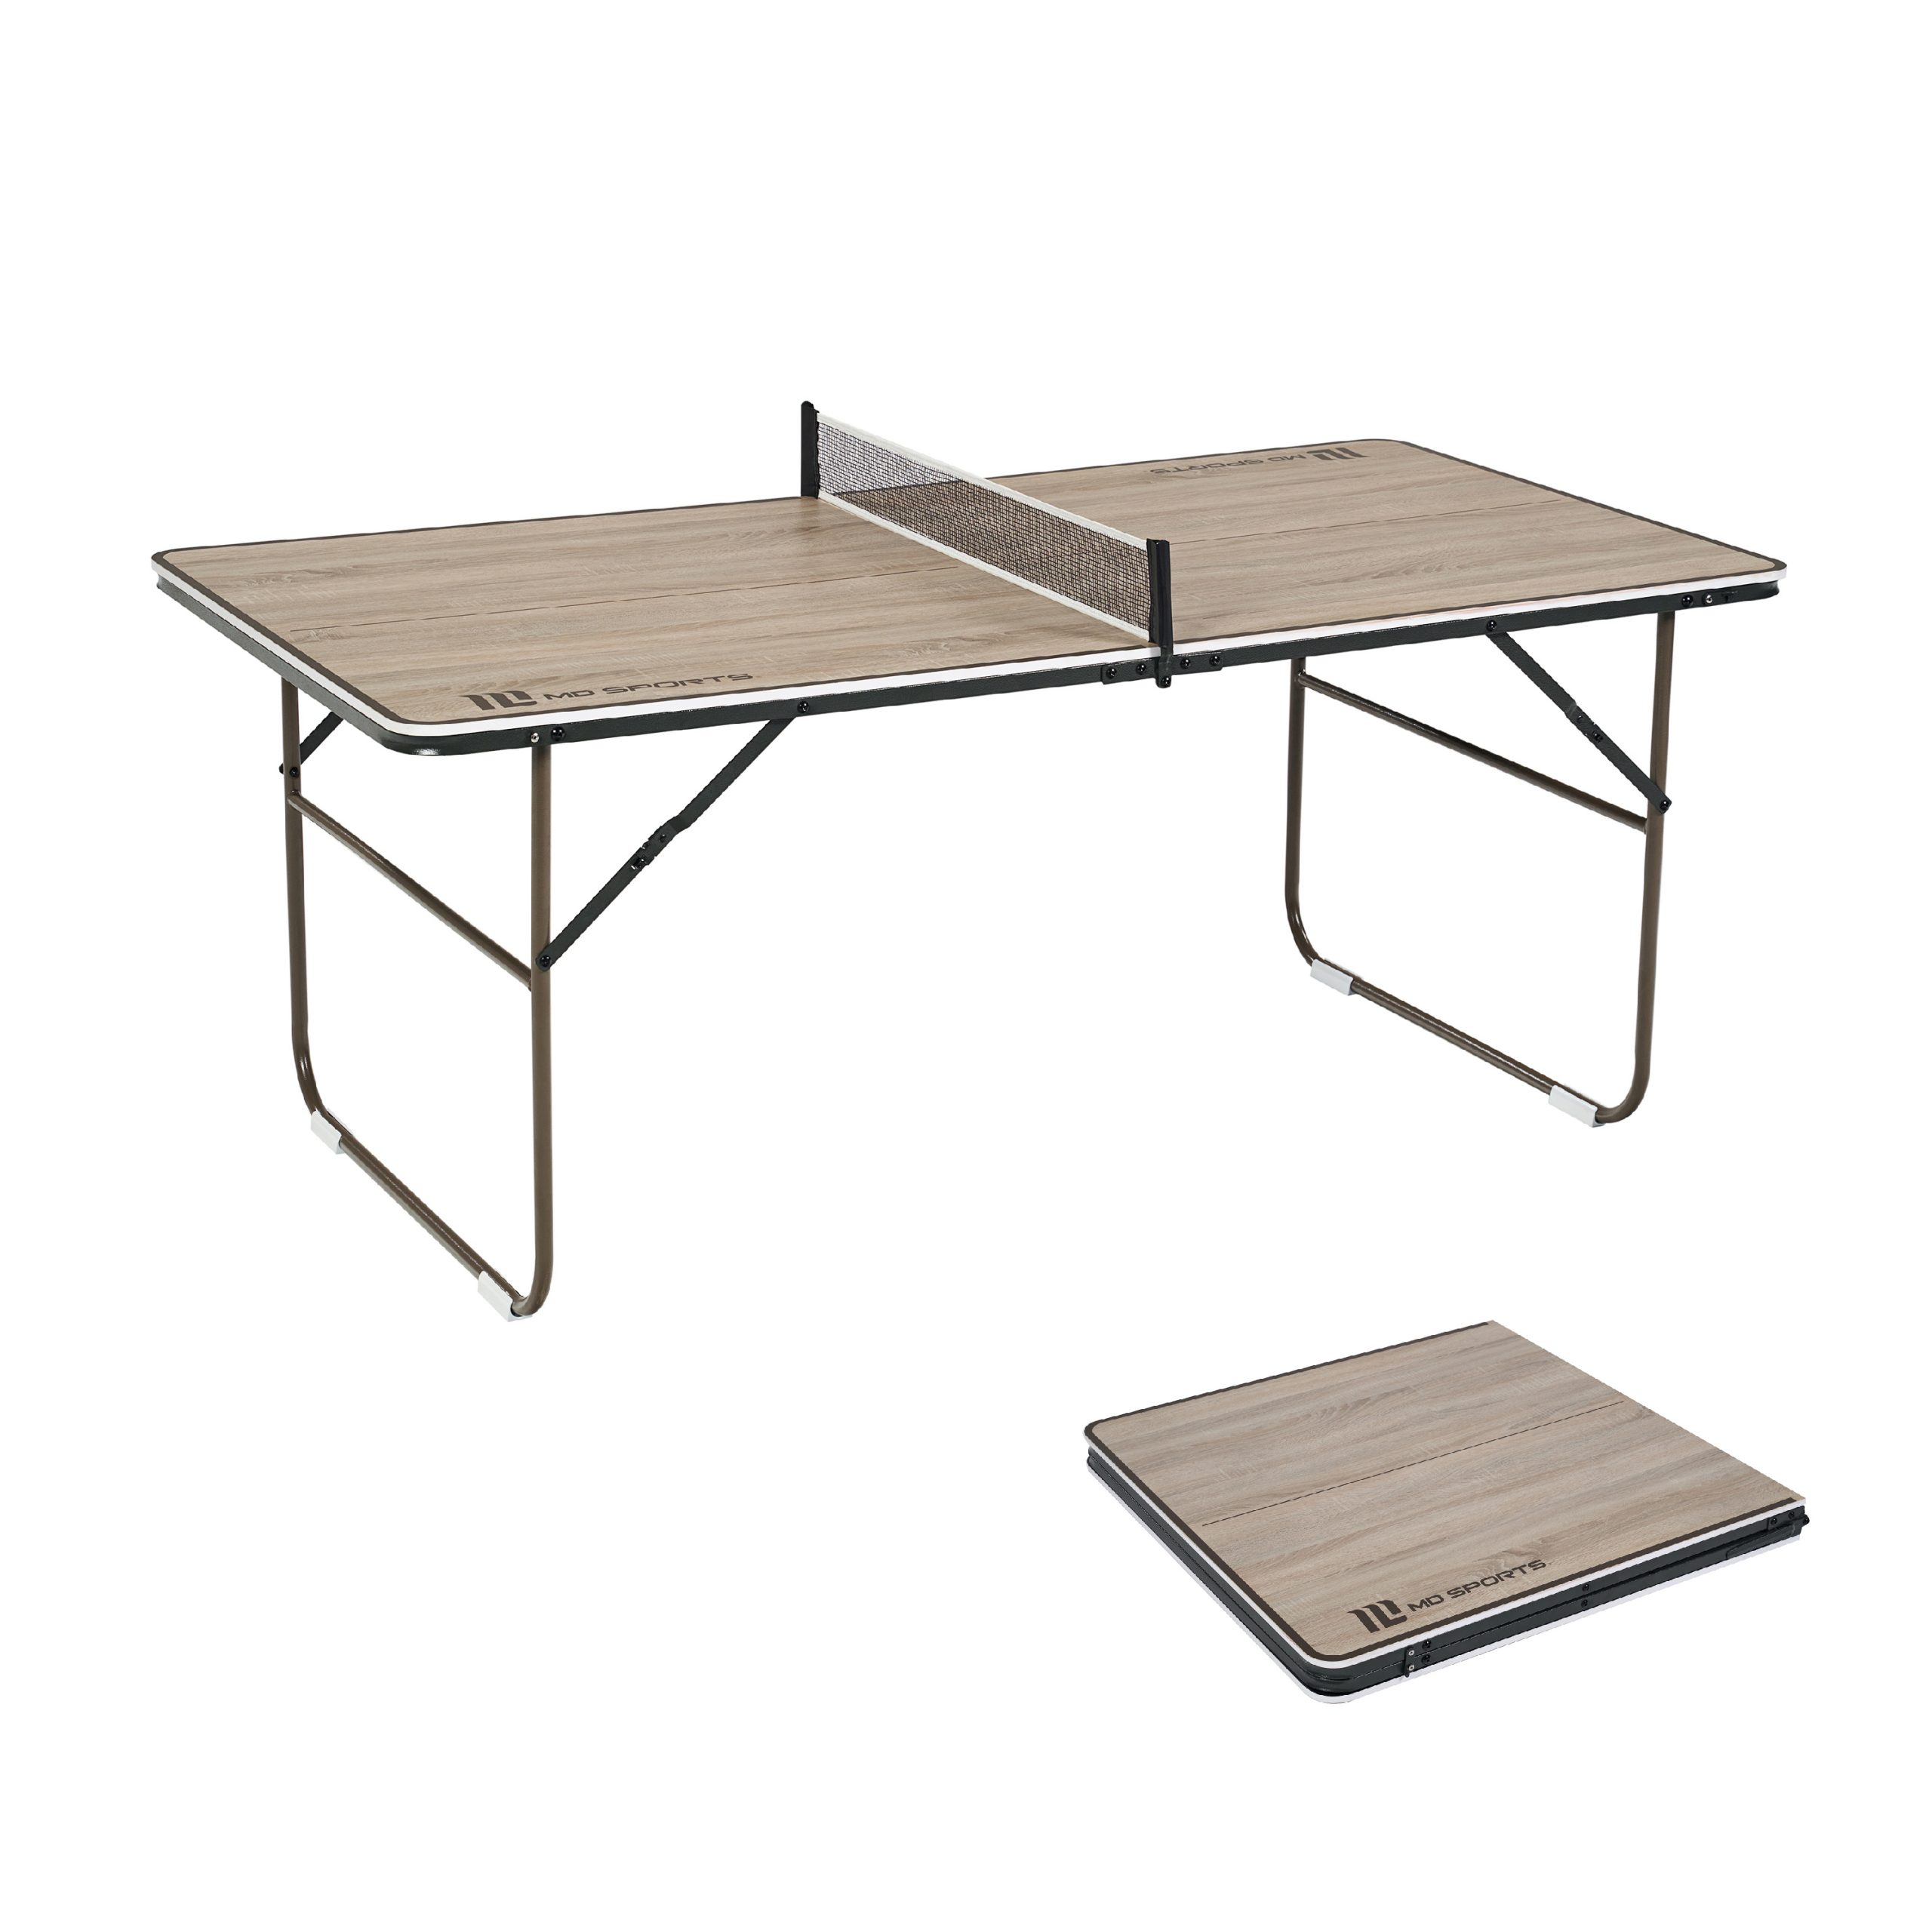 MD Sports Quick fold Table Tennis Table